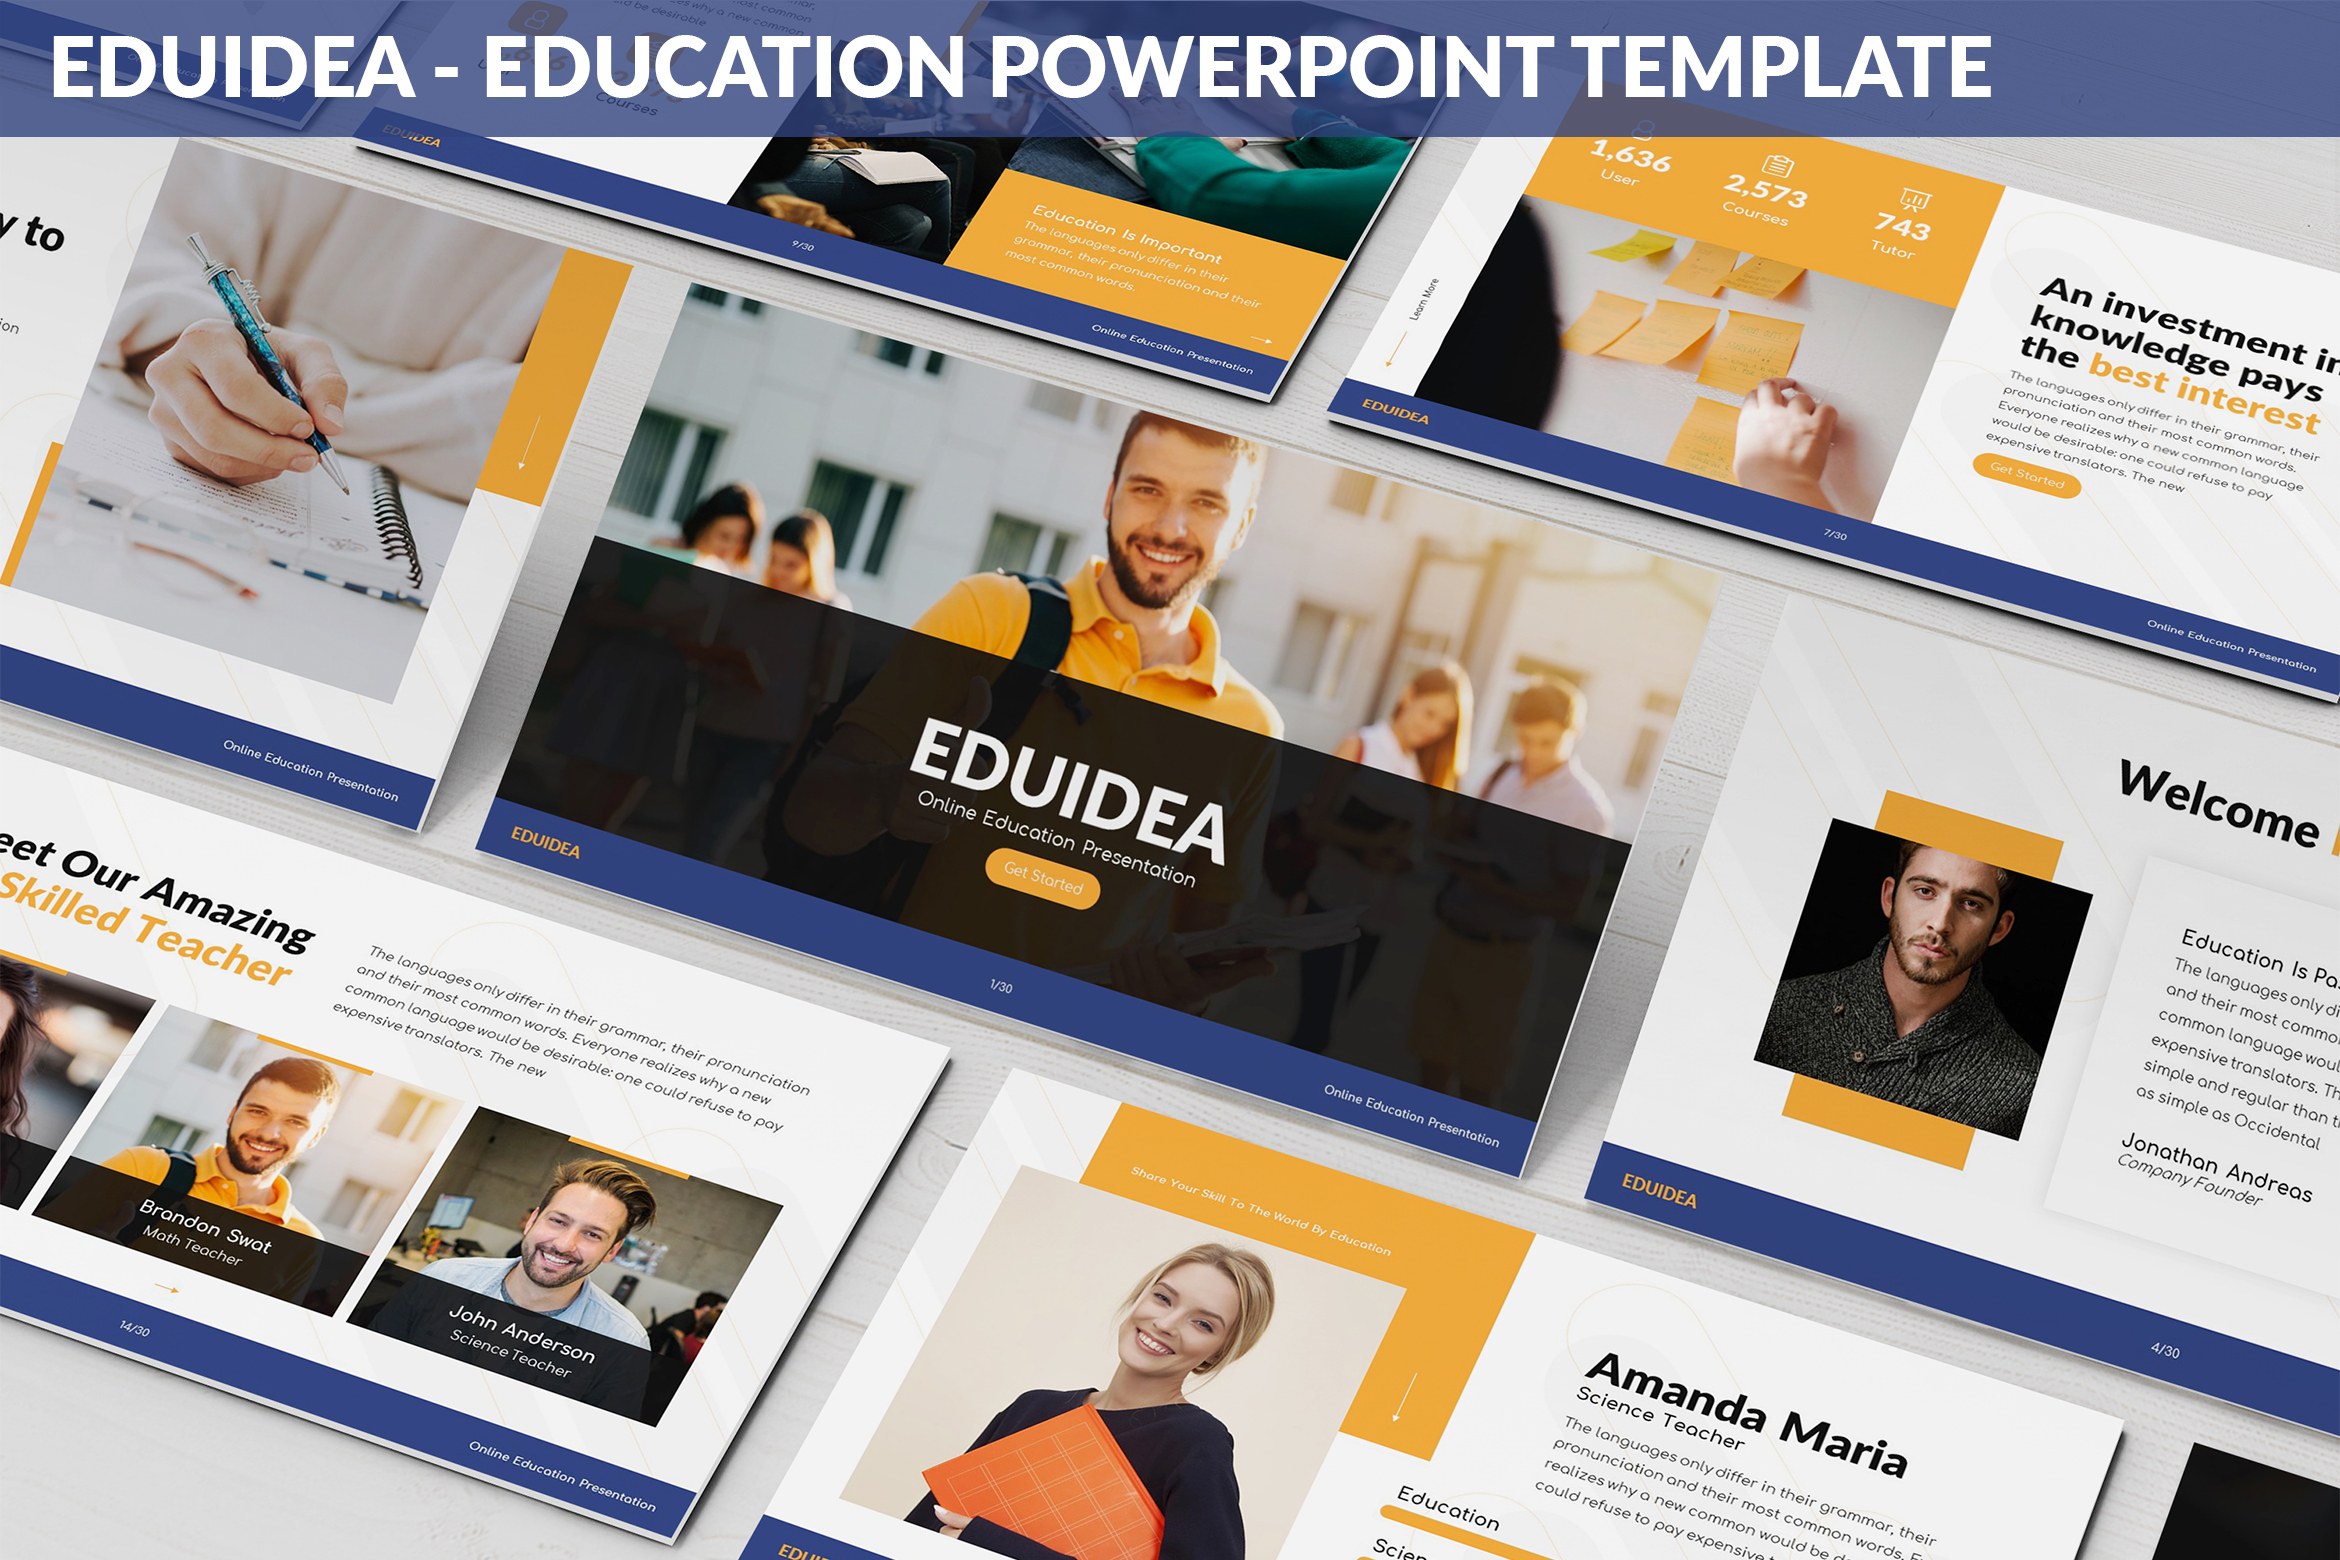 Eduidea - Education Powerpoint Template example image 1